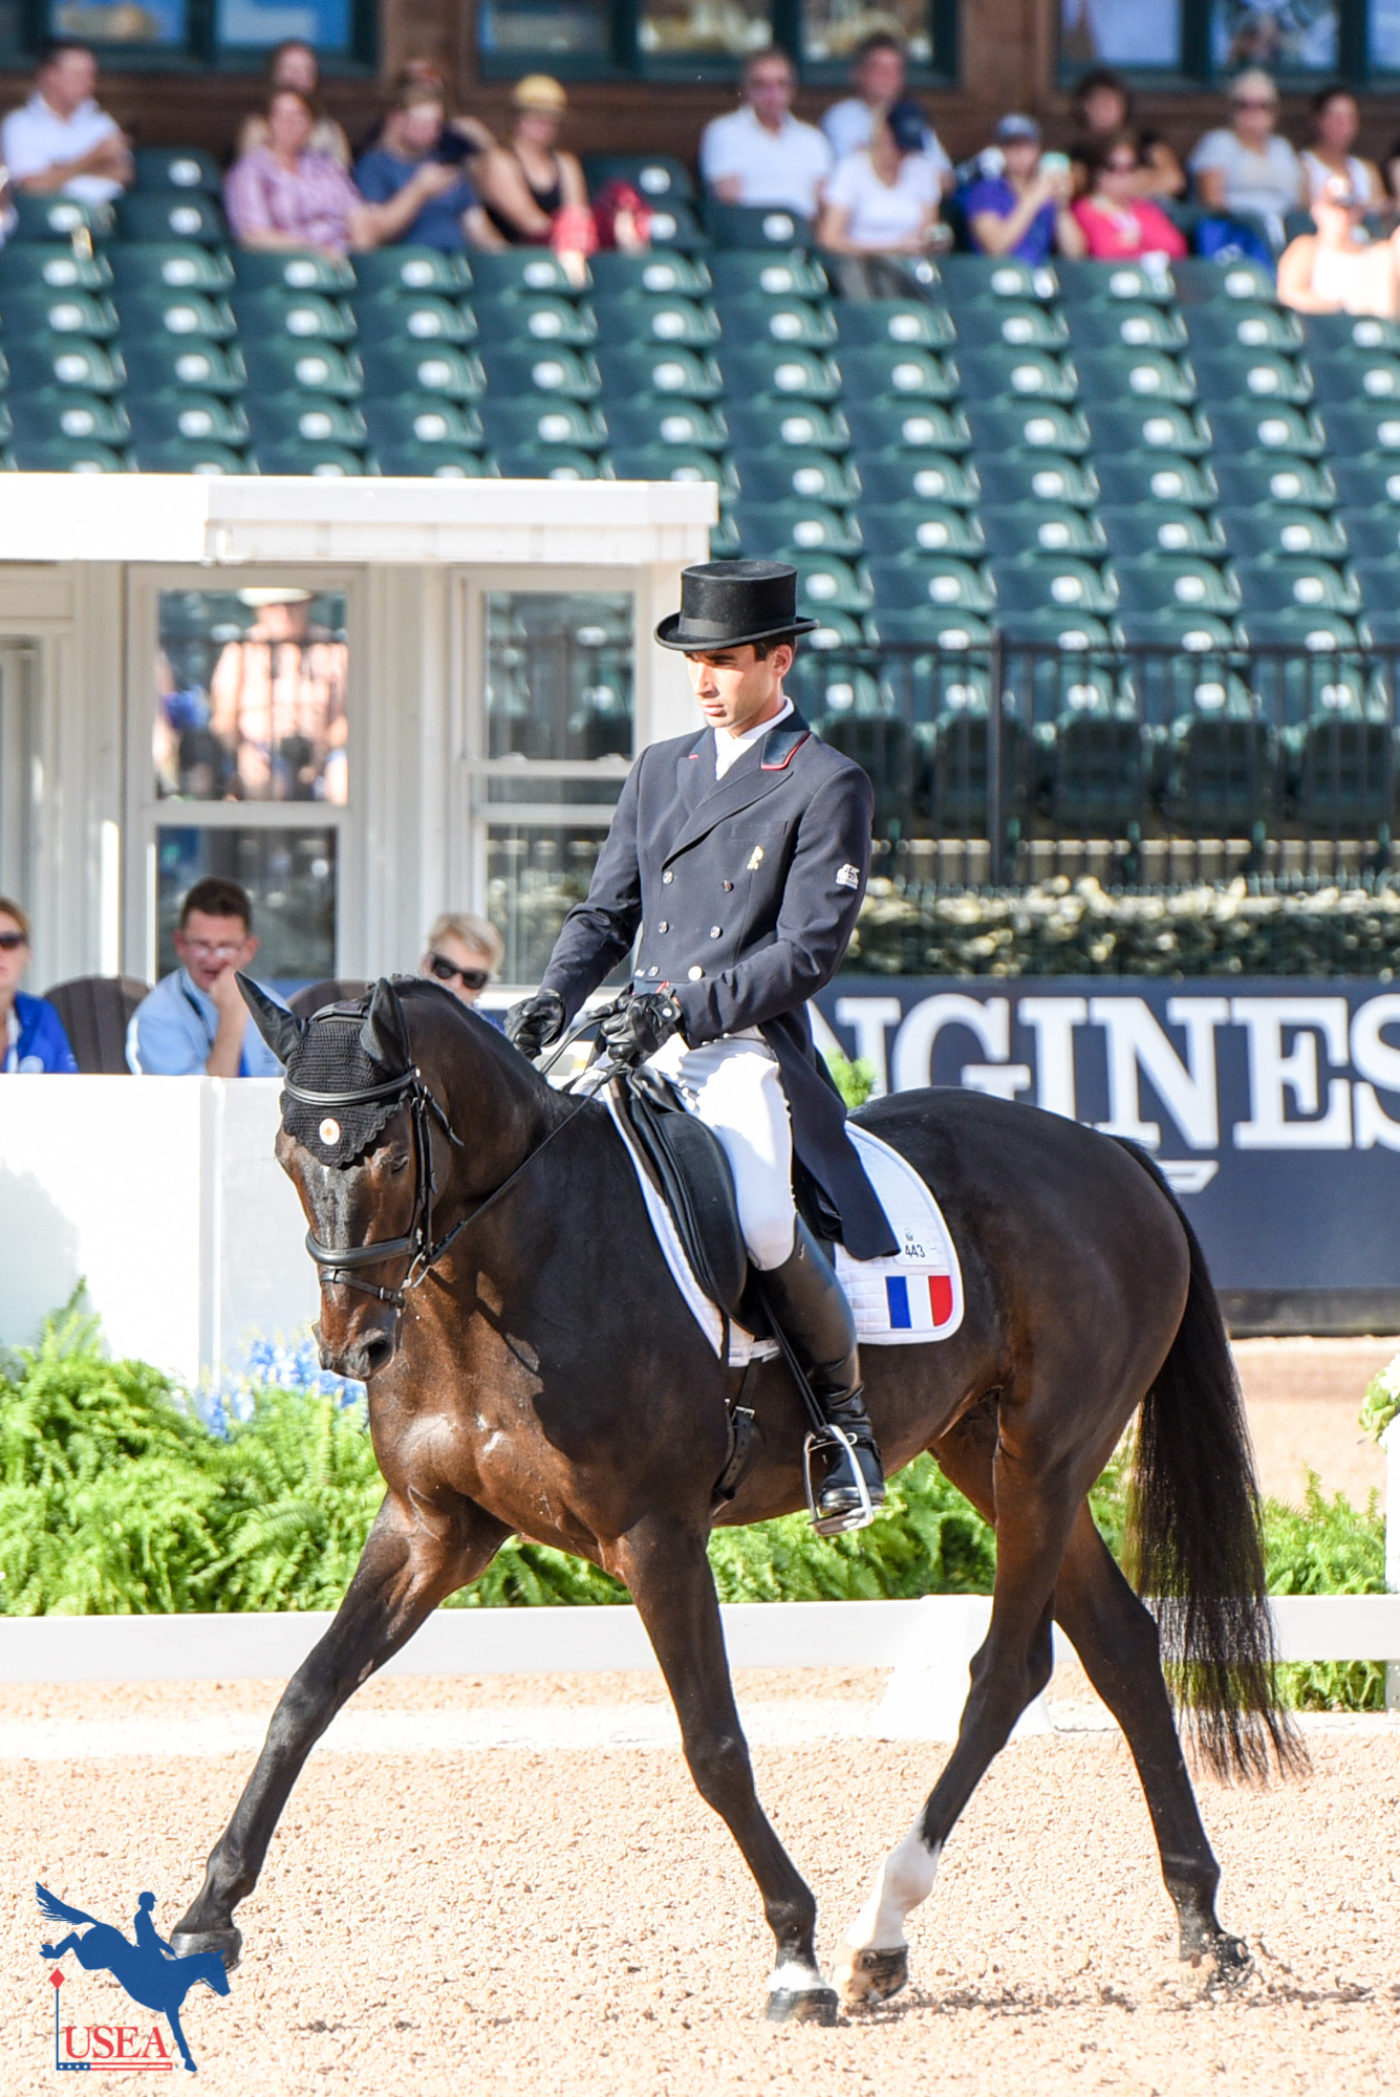 9th - Astier Nicolas and Vinci de la Vigne (FRA)